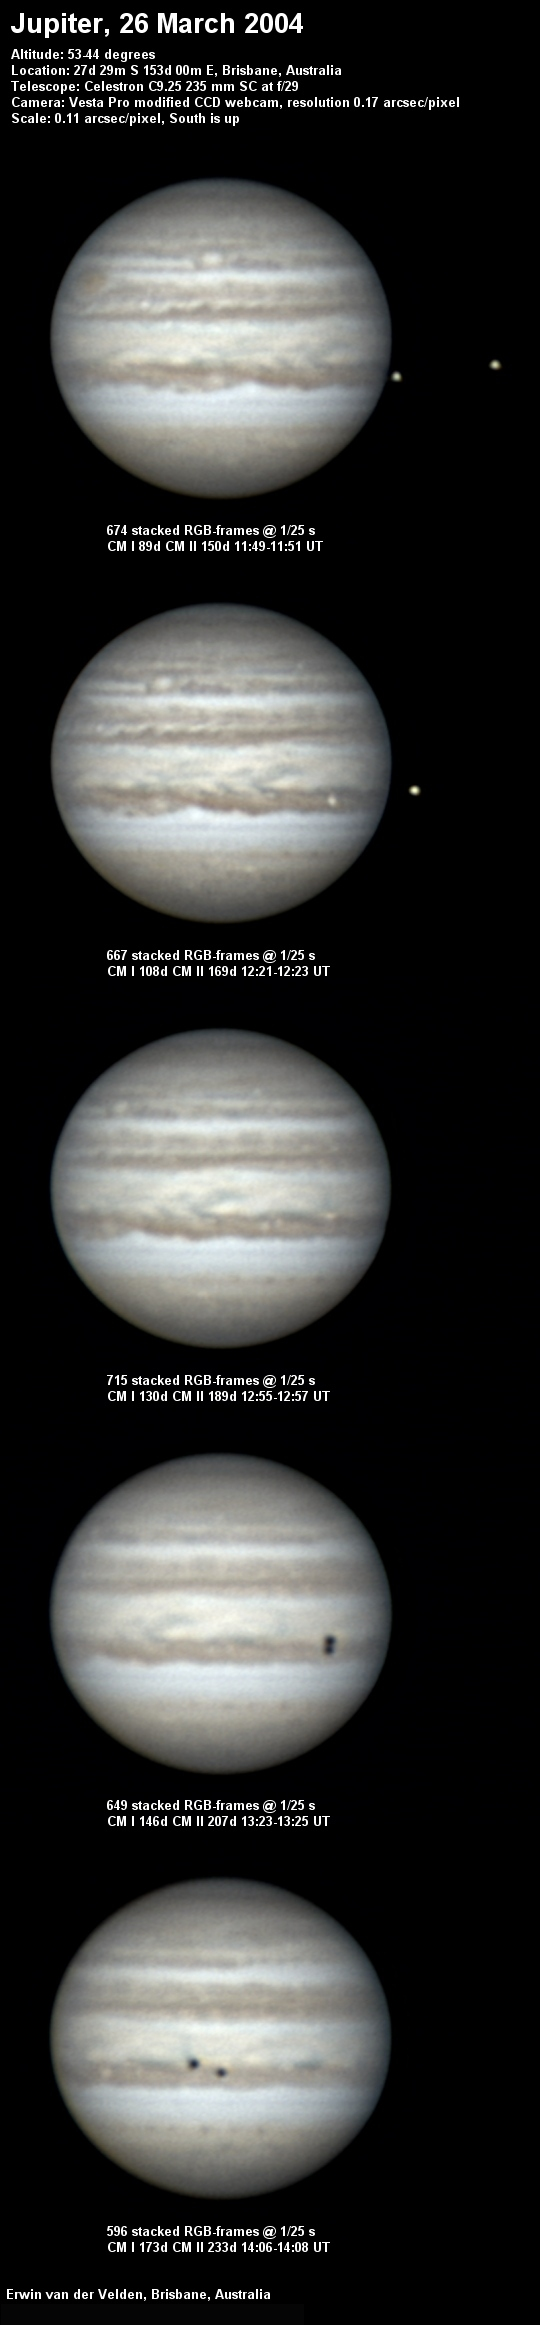 Jupiter image captured on the 26th of March 2004